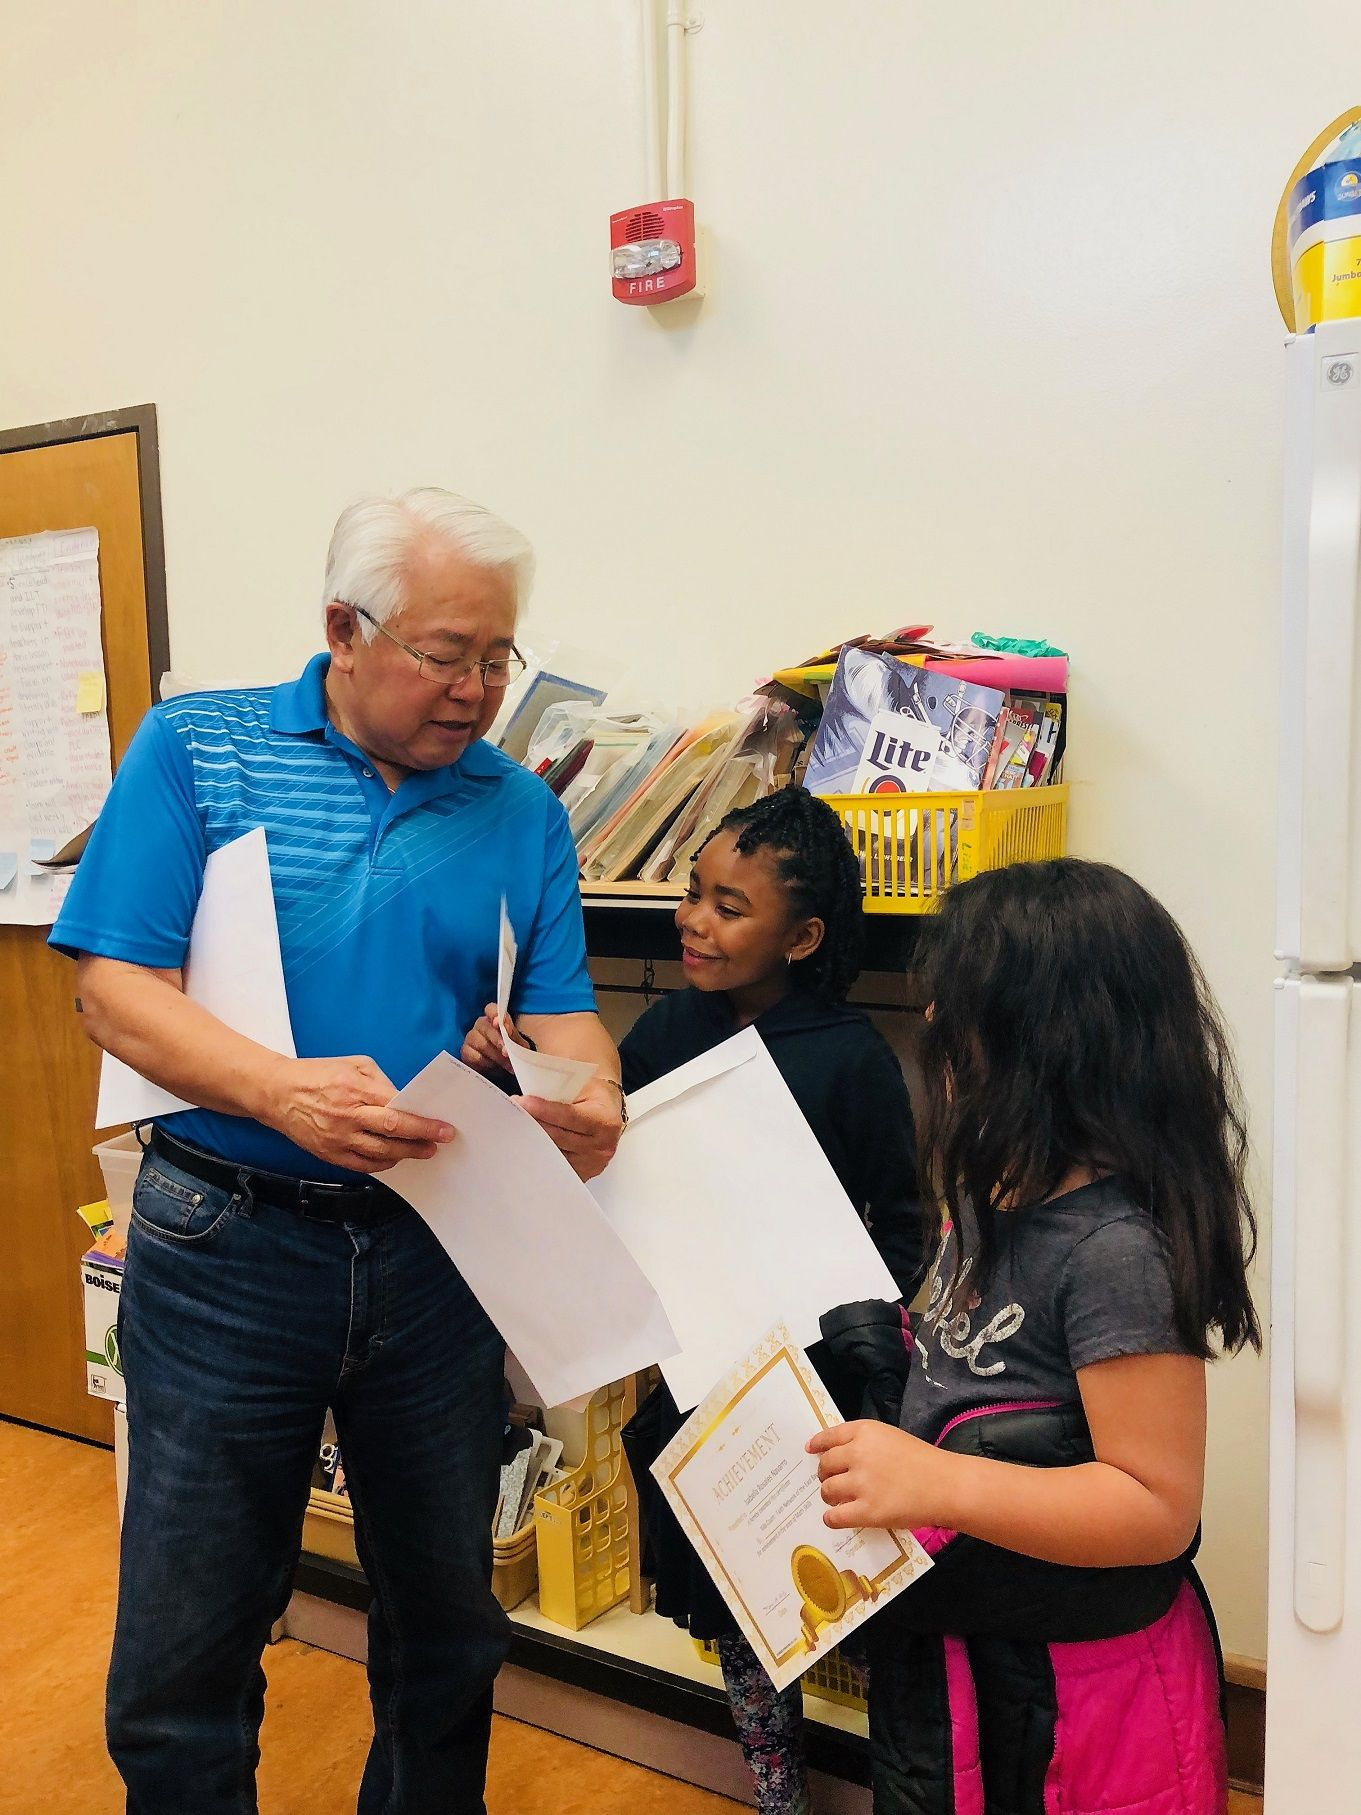 Kids Count math tutor Wilson Leong celebrates with students at Laurel Elementary